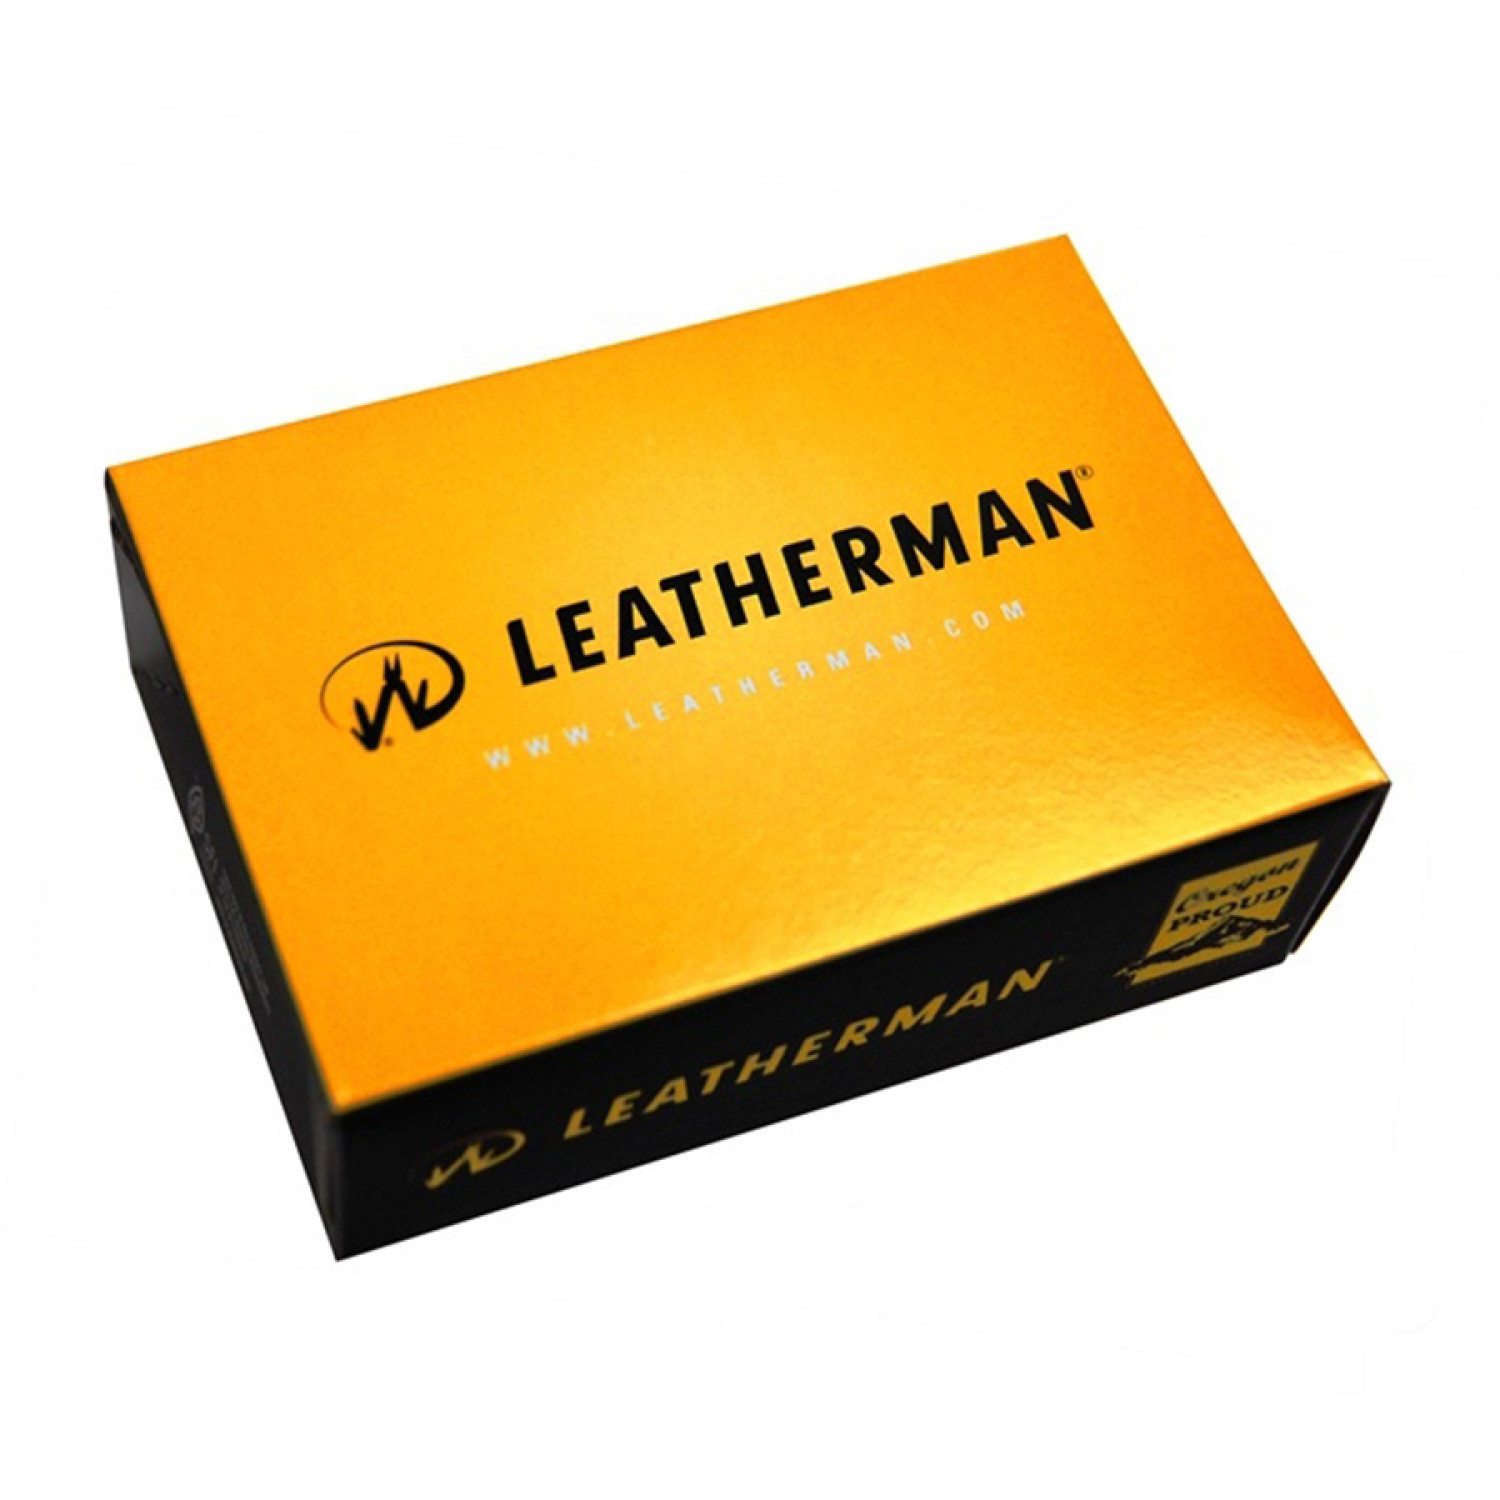 Мультитул Leatherman MUT, 16 функций, черный